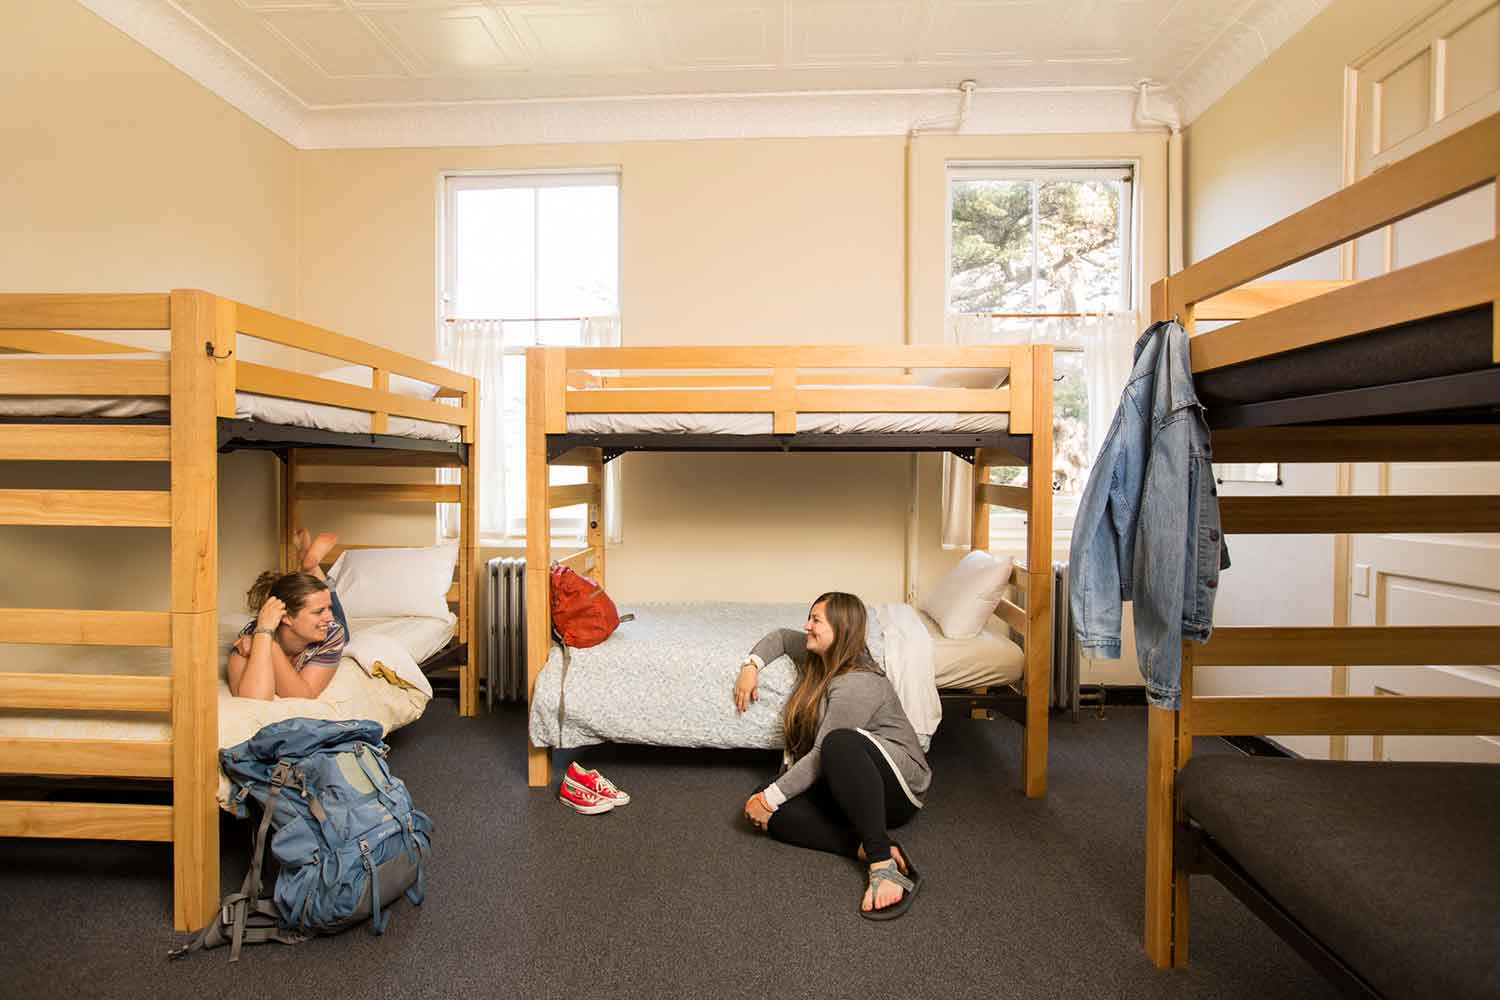 Room view with two young women talking in room with bunk beds.